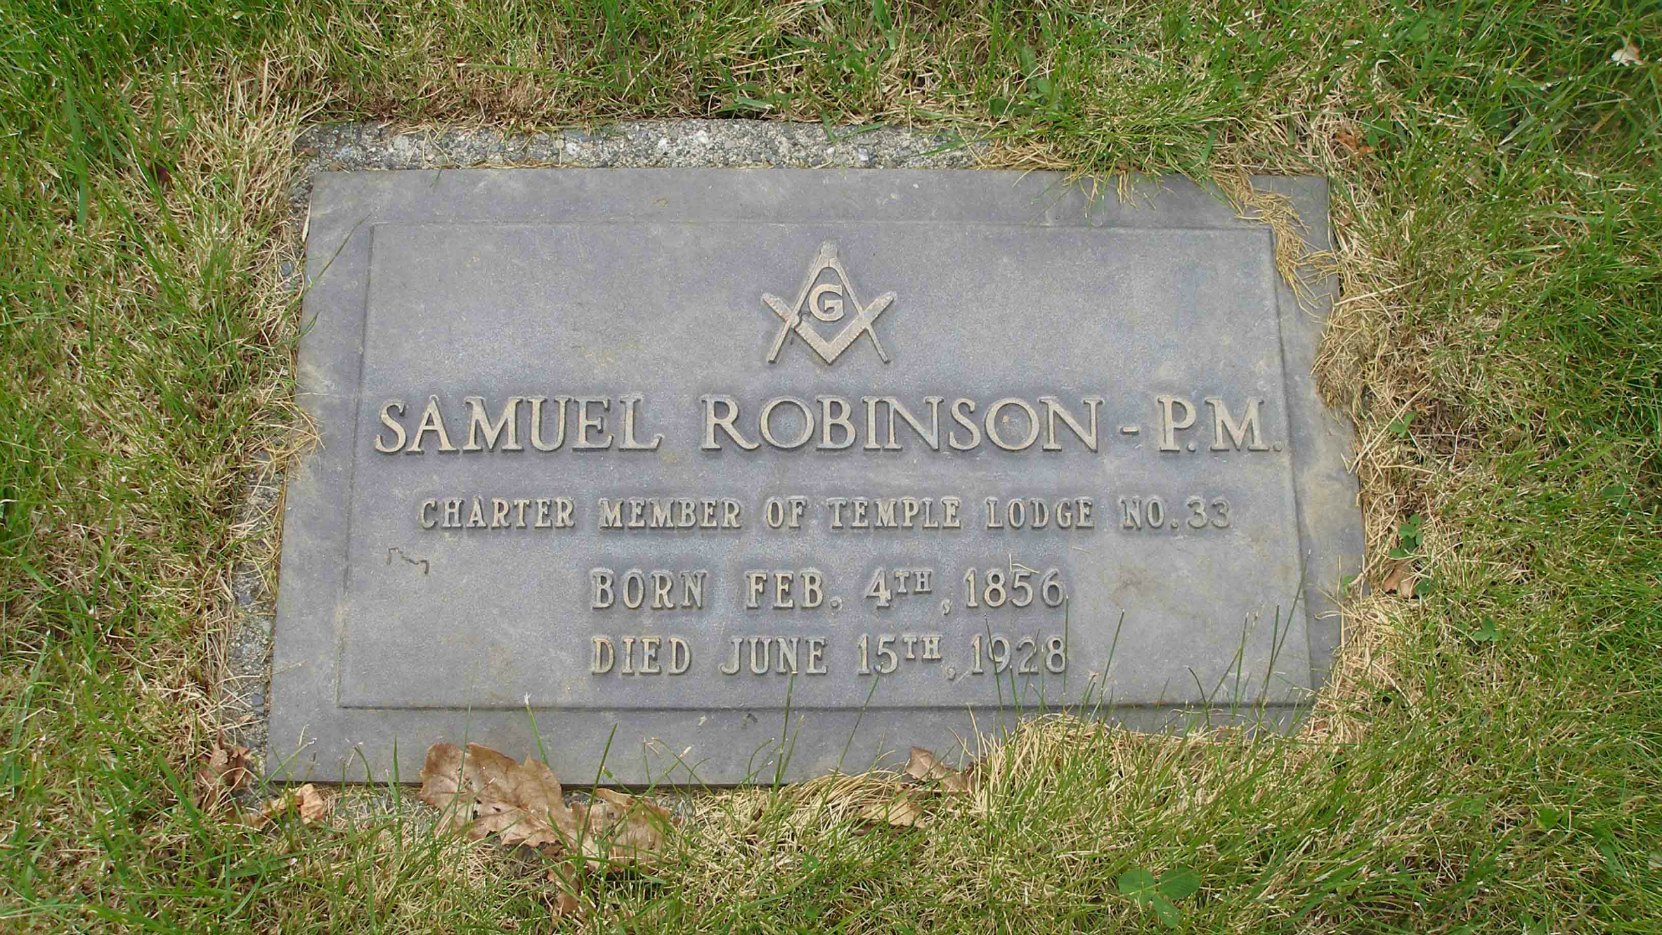 Samuel Robinson grave marker, St. Mary's Somenos Anglican cemetery, Somenos Road, North Cowichan